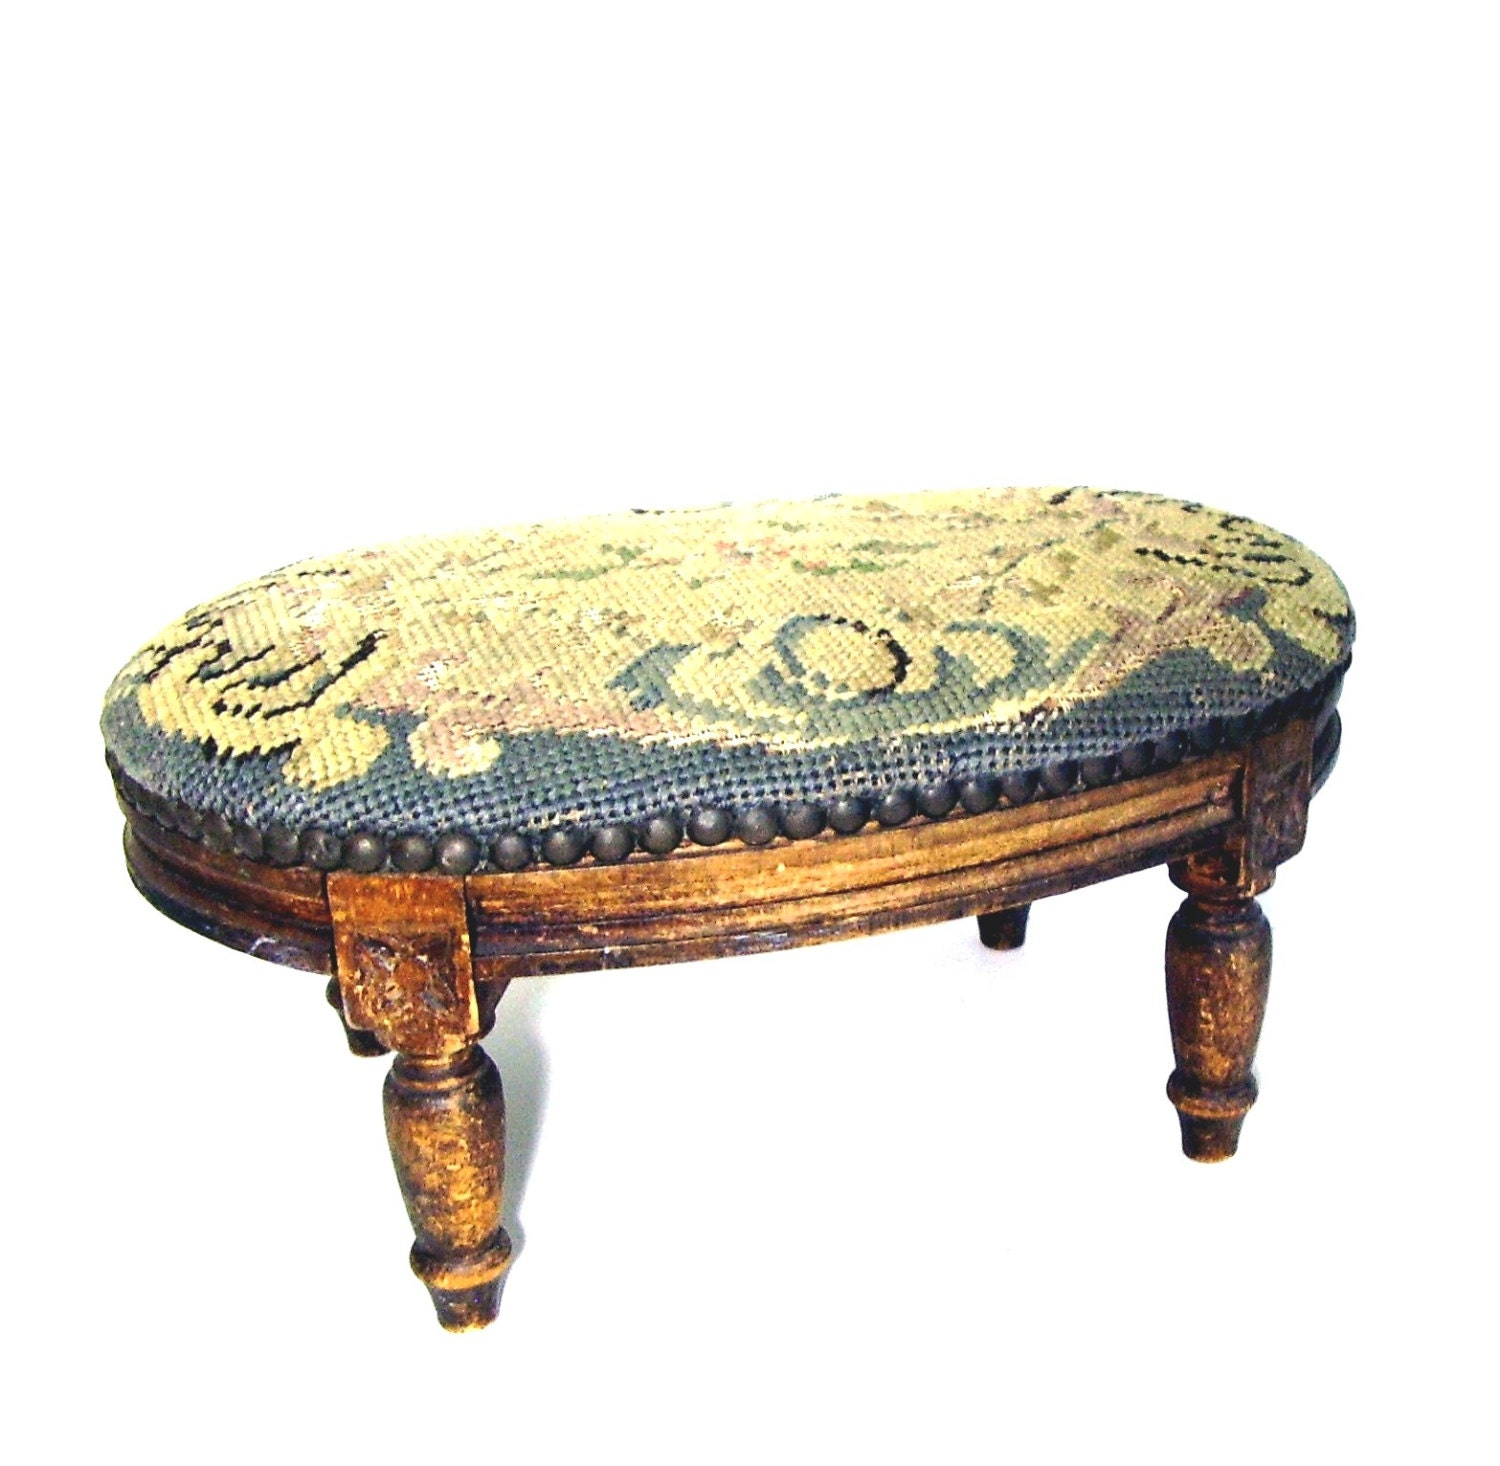 Antique Foot Stool 19th C Petite Louis Xvi Needlepoint